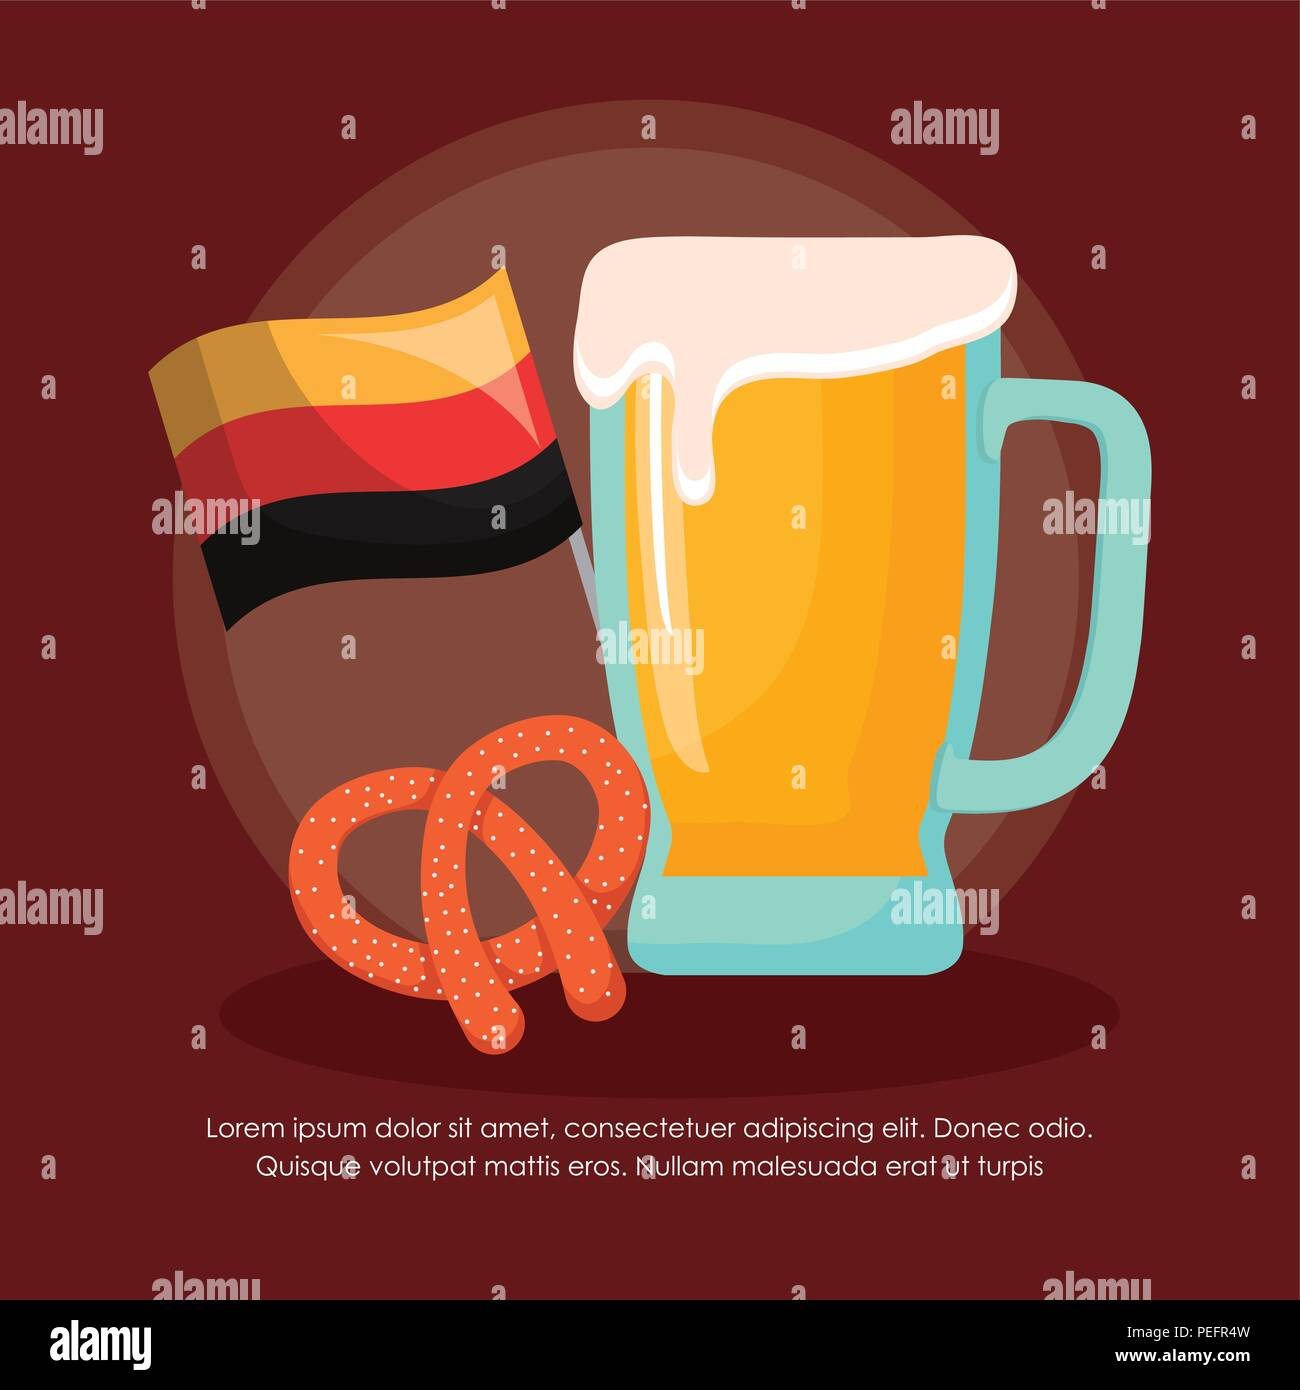 oktoberfest infographic template with beer glass and pretzel icon over brown background, colorful design. vector illustration - Stock Image